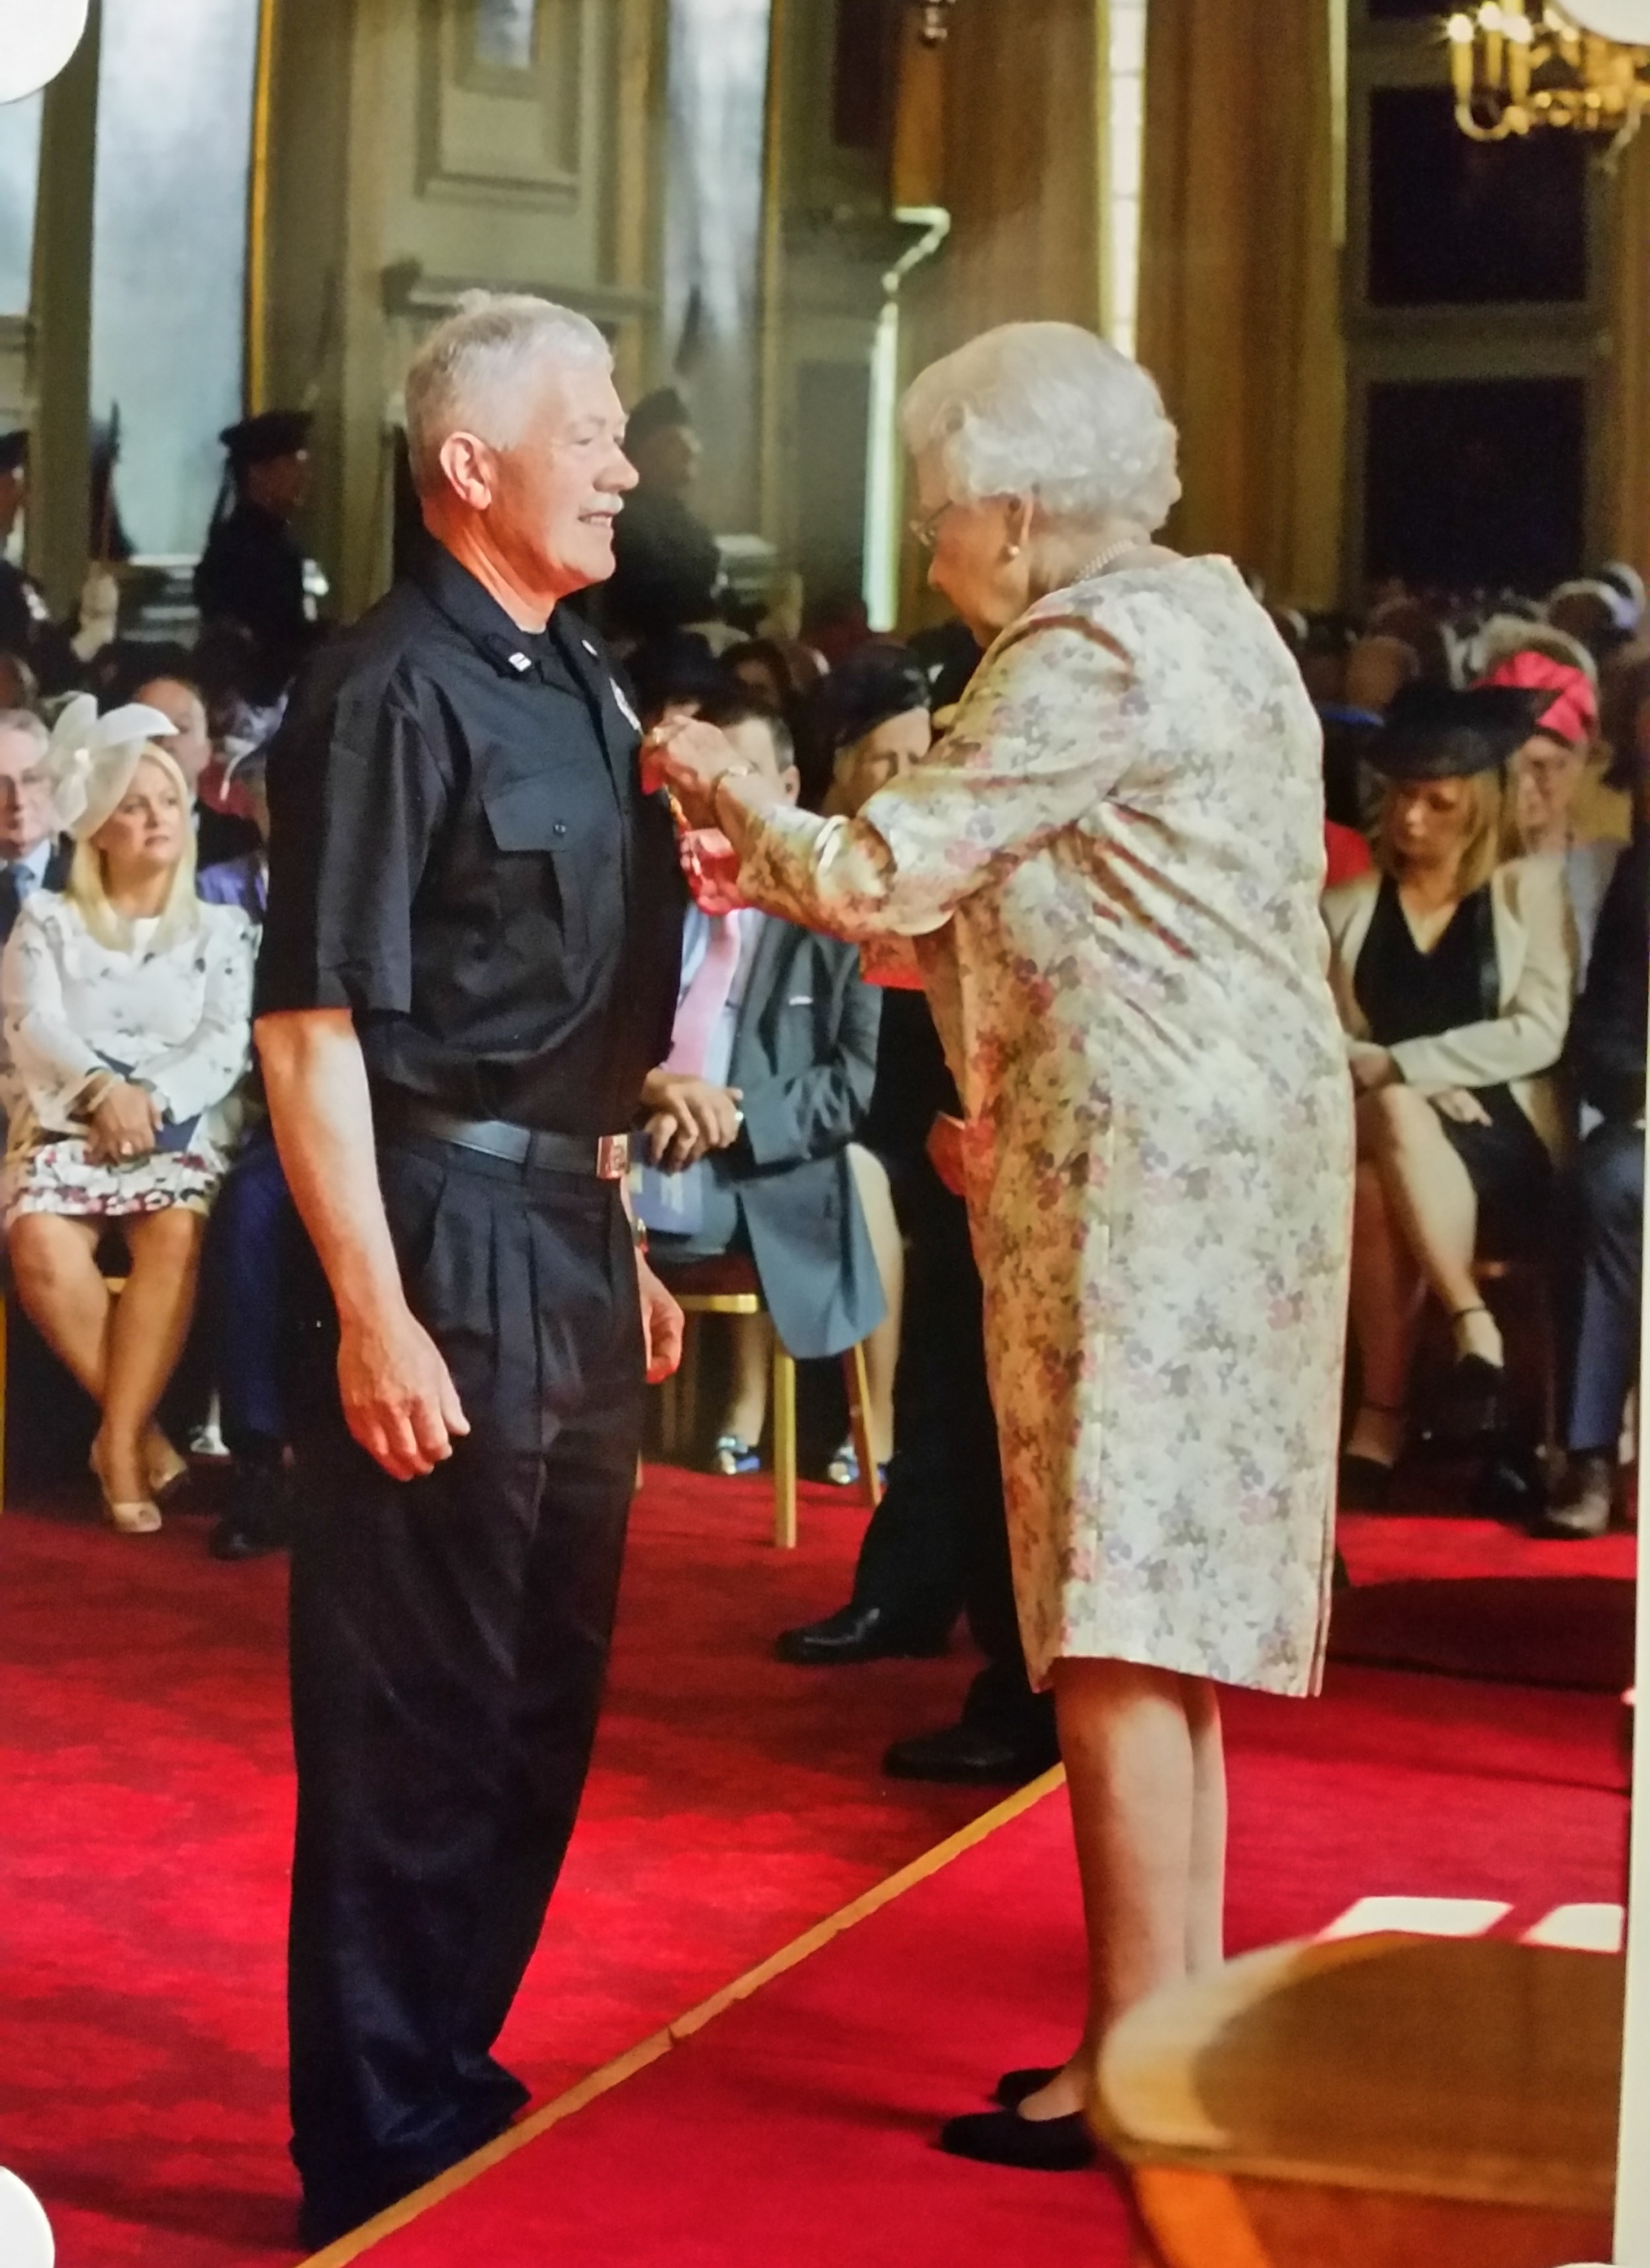 Balintore Community Response Unit Crew Manager receives QFSM at Holyrood House